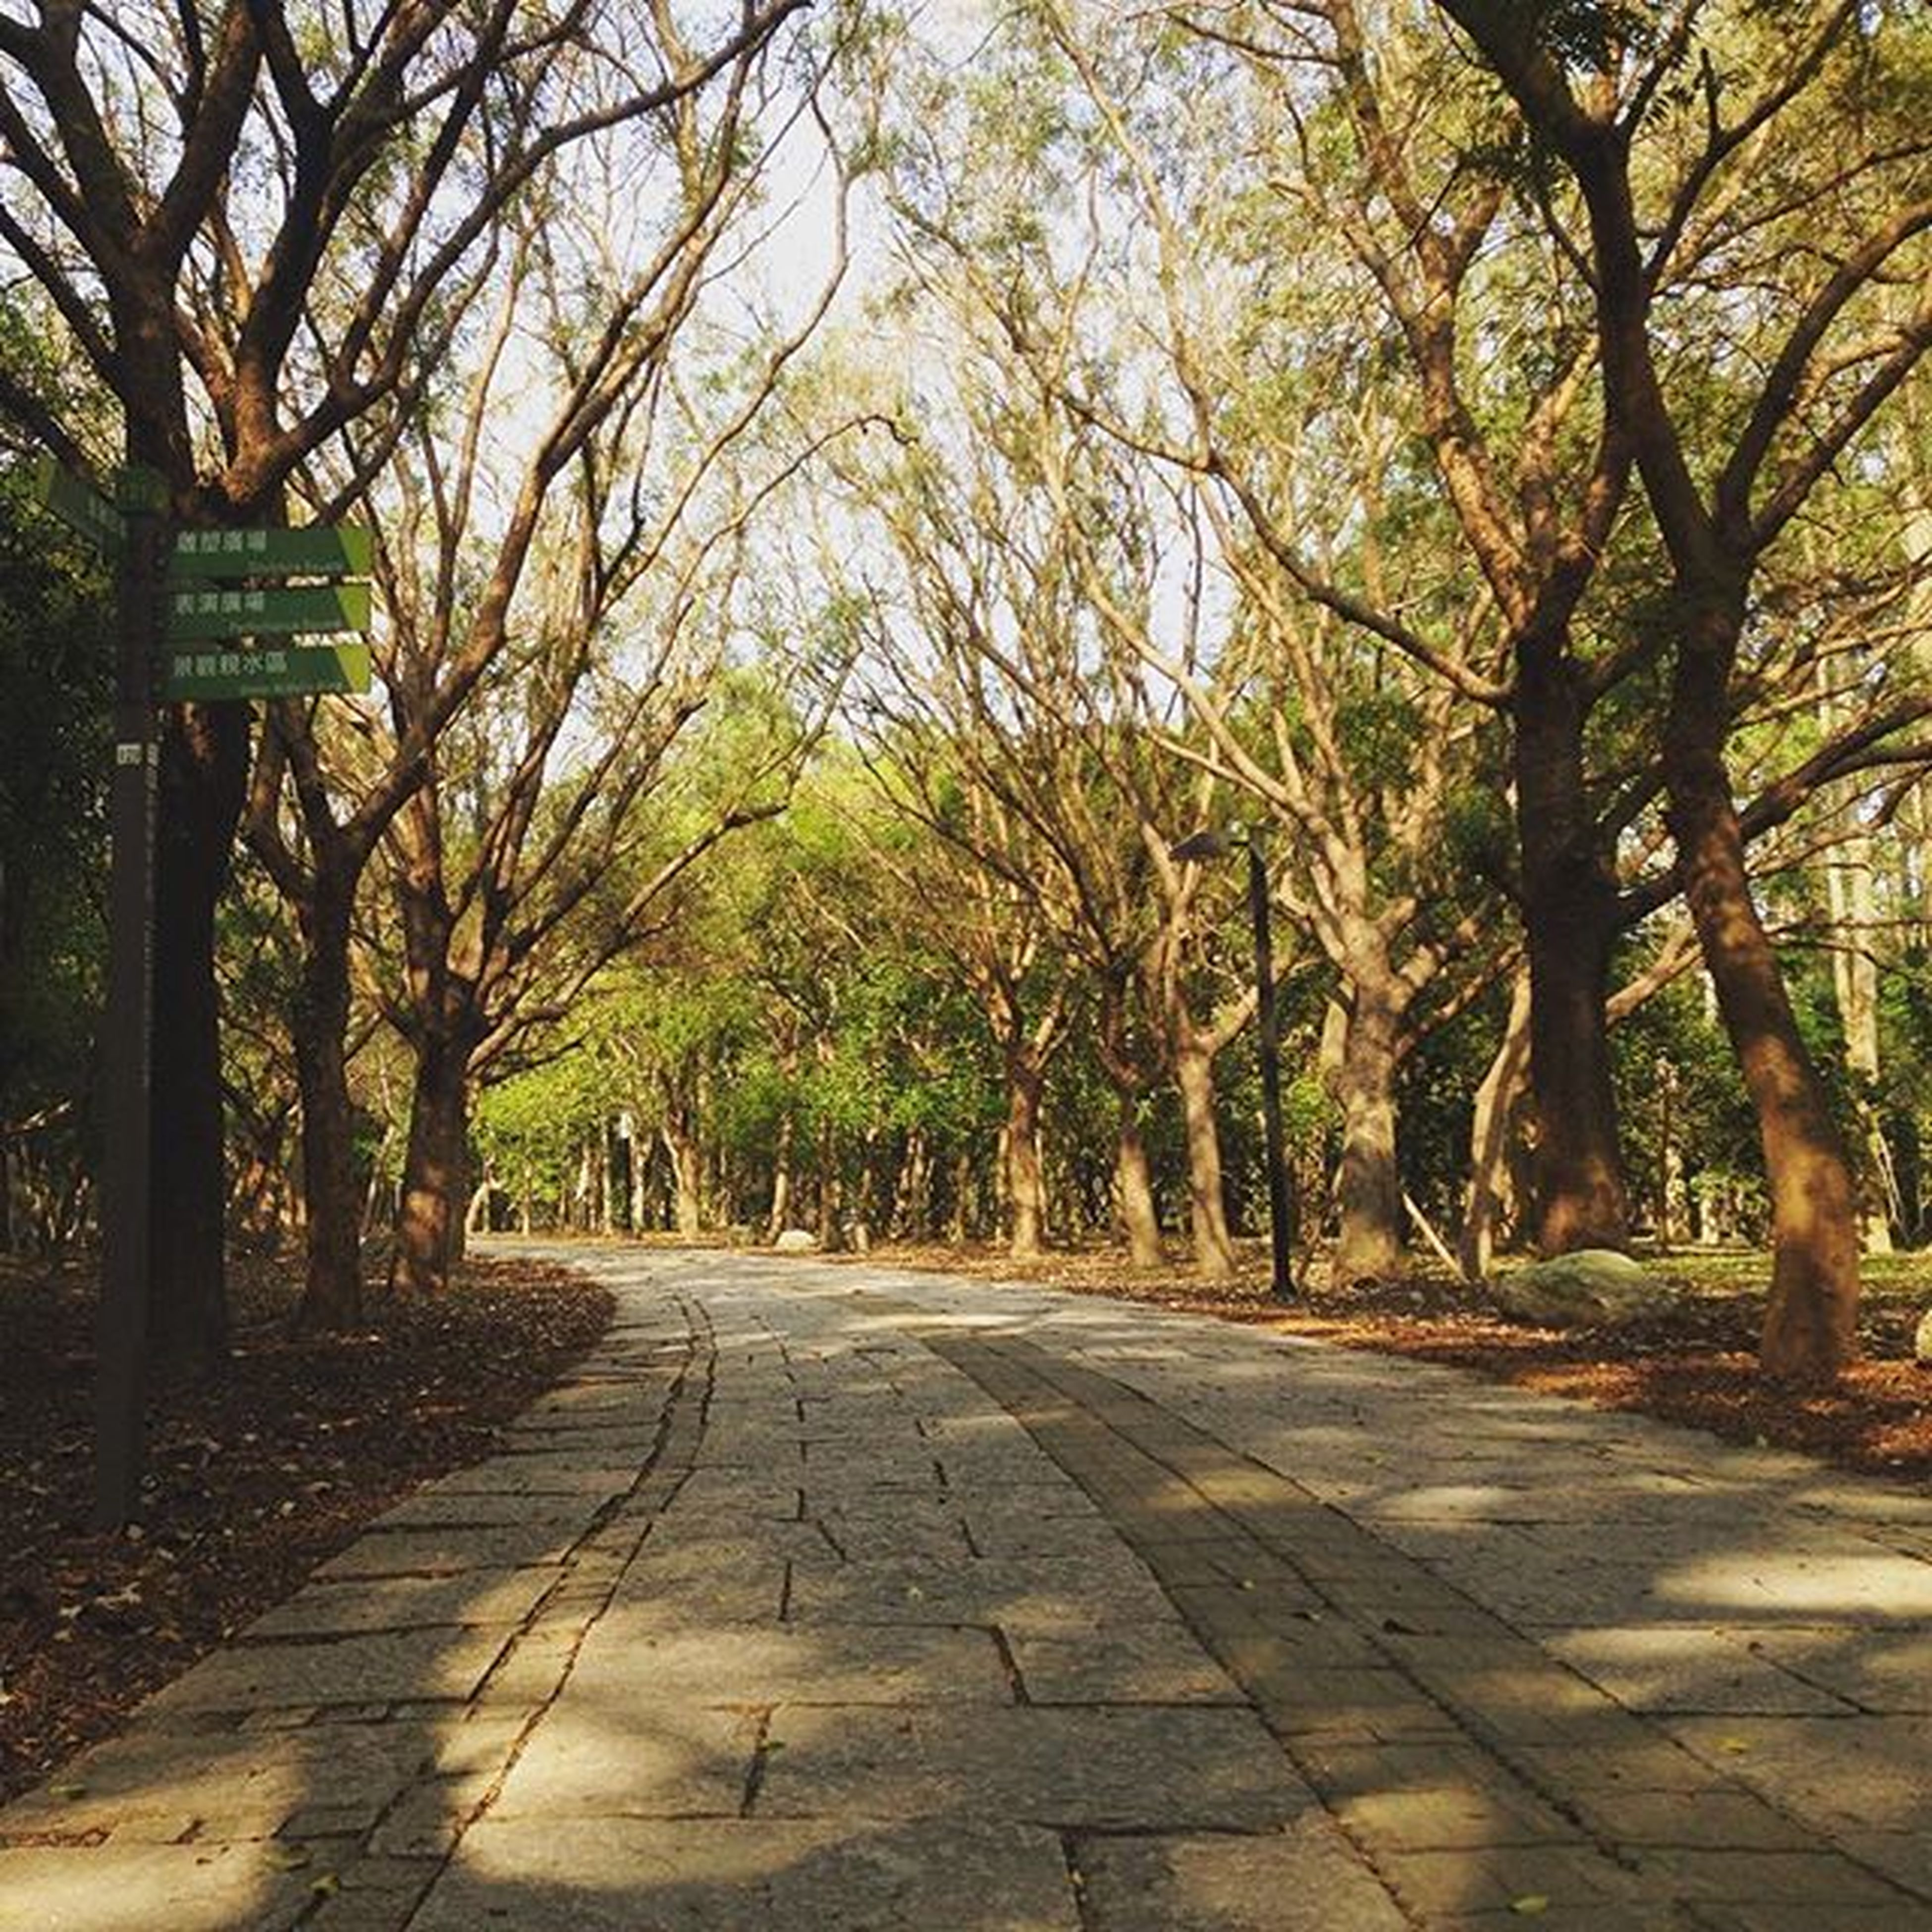 tree, the way forward, treelined, diminishing perspective, footpath, branch, growth, vanishing point, tranquility, road, tree trunk, nature, walkway, empty, street, transportation, tranquil scene, pathway, park - man made space, beauty in nature